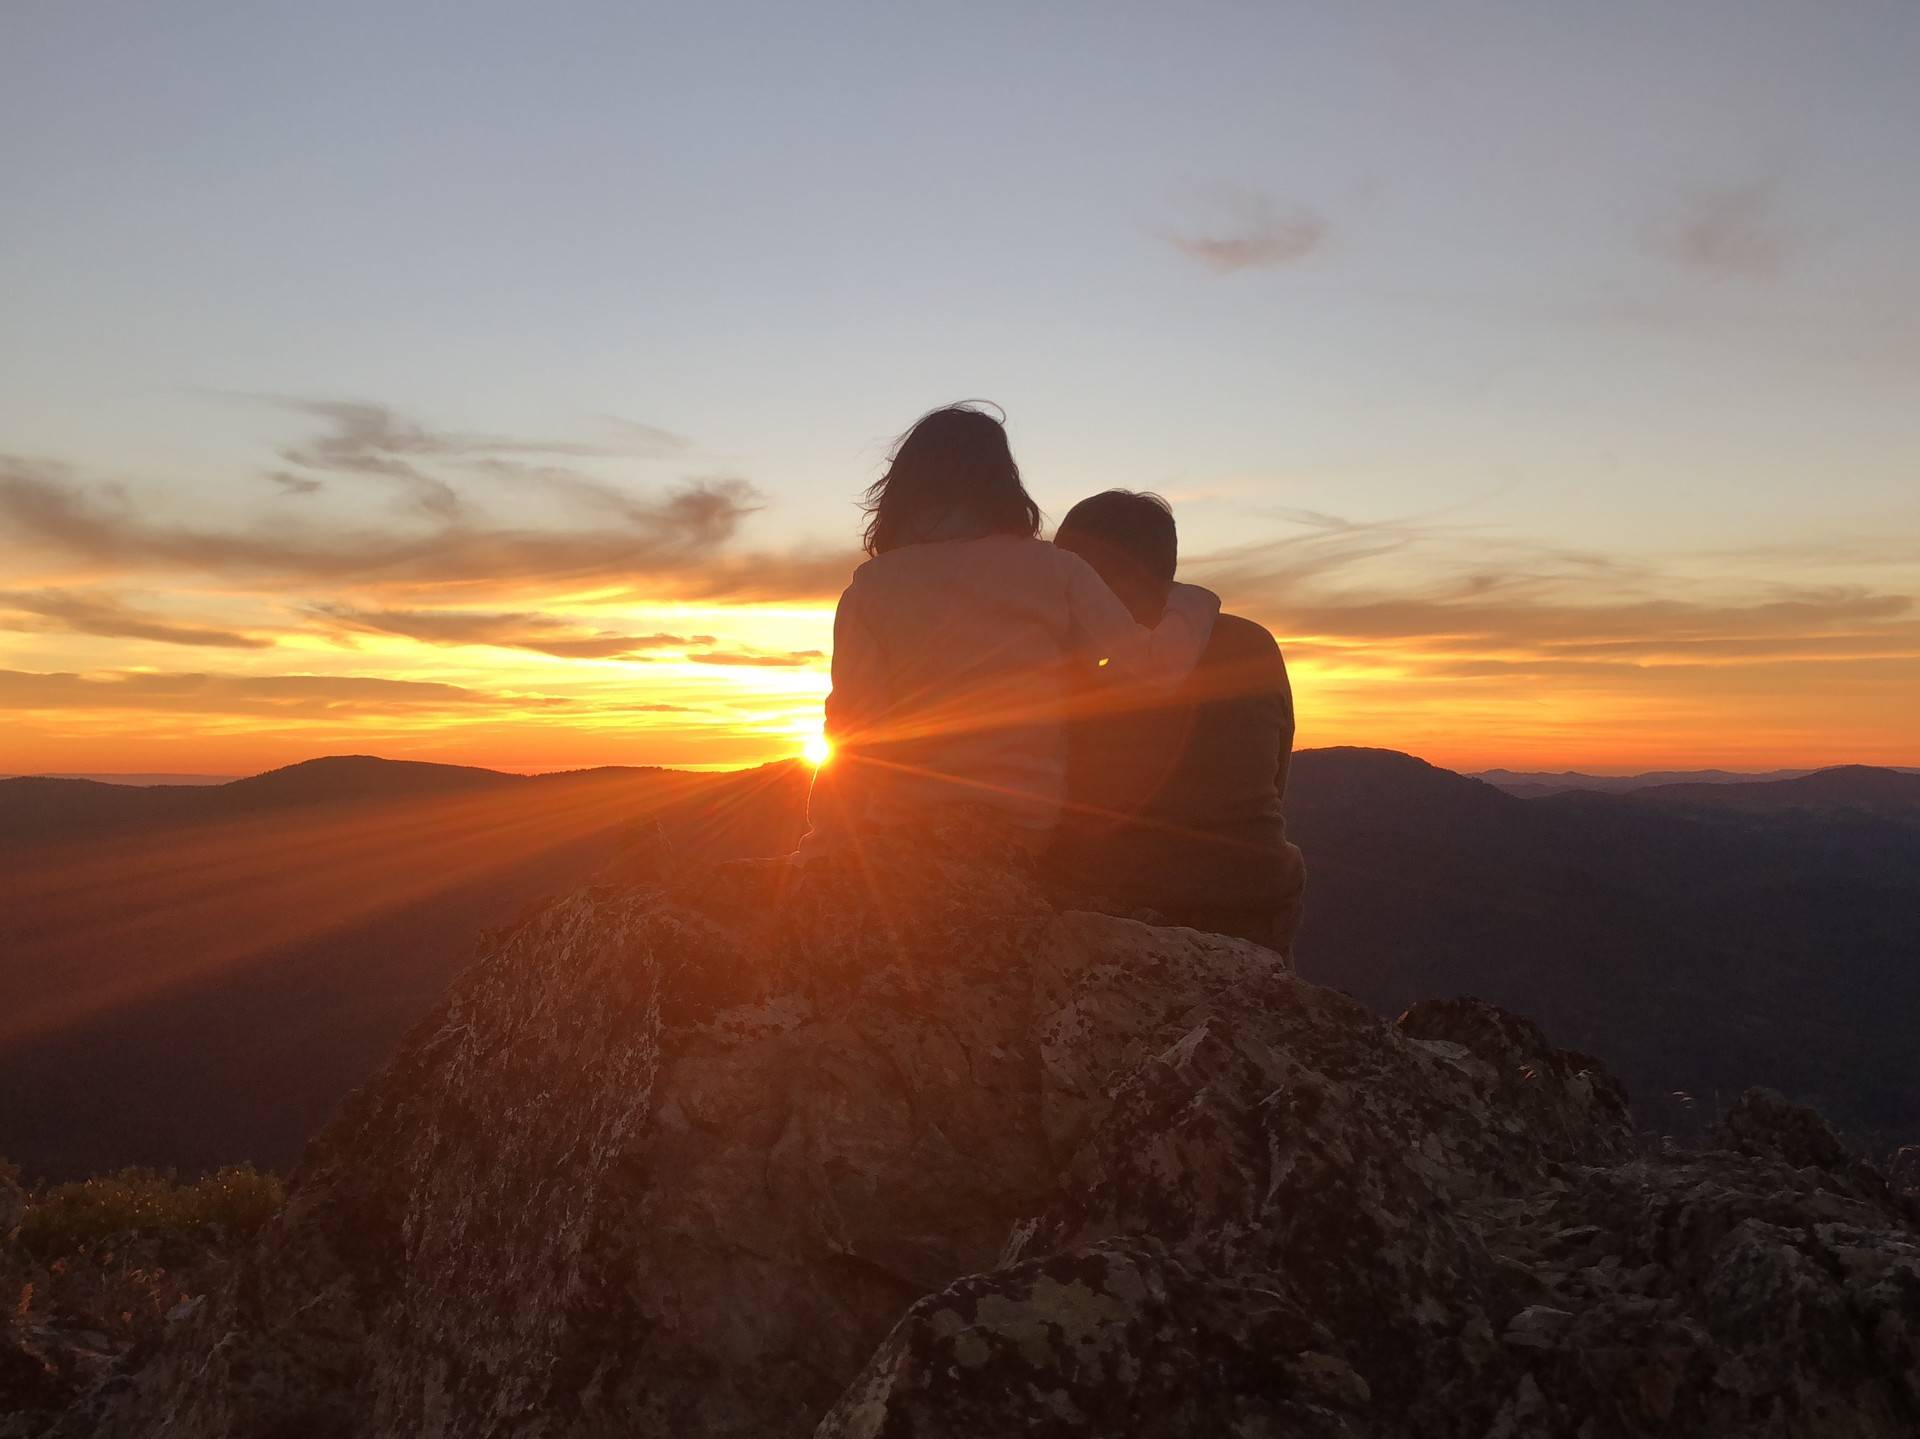 Tiffany Camhi and her boyfriend sit on top of Monkey Rock in Mendocino National Forest. The rock formation was spared from the Mendocino Complex Fire. Tiffany Camhi/KQED